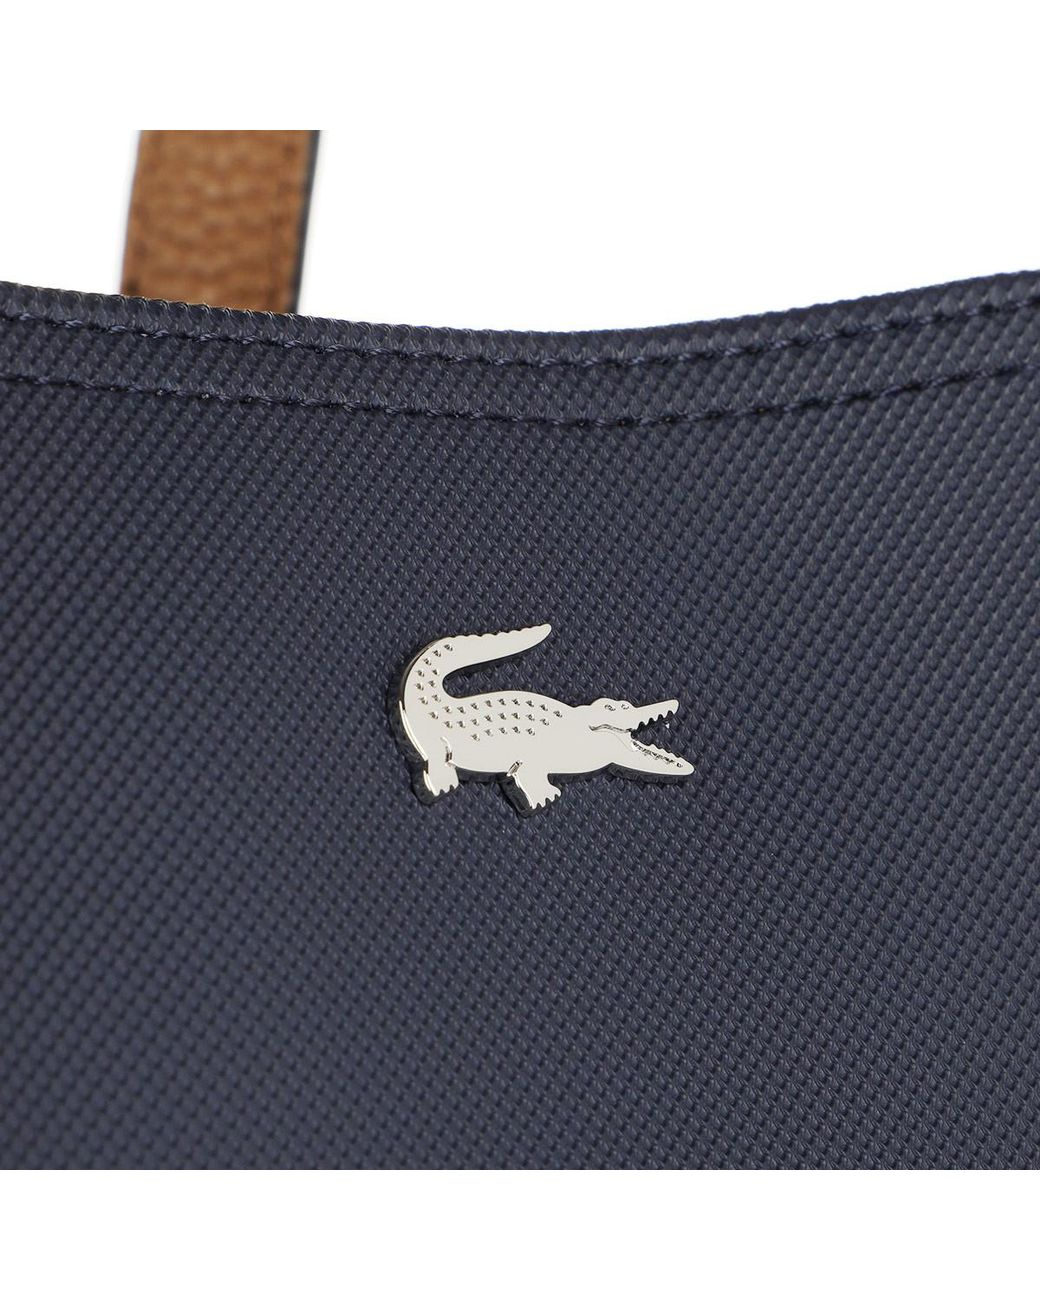 01a232a5107c Lacoste Shopping Bag Peacoat Cashew in Blue - Lyst